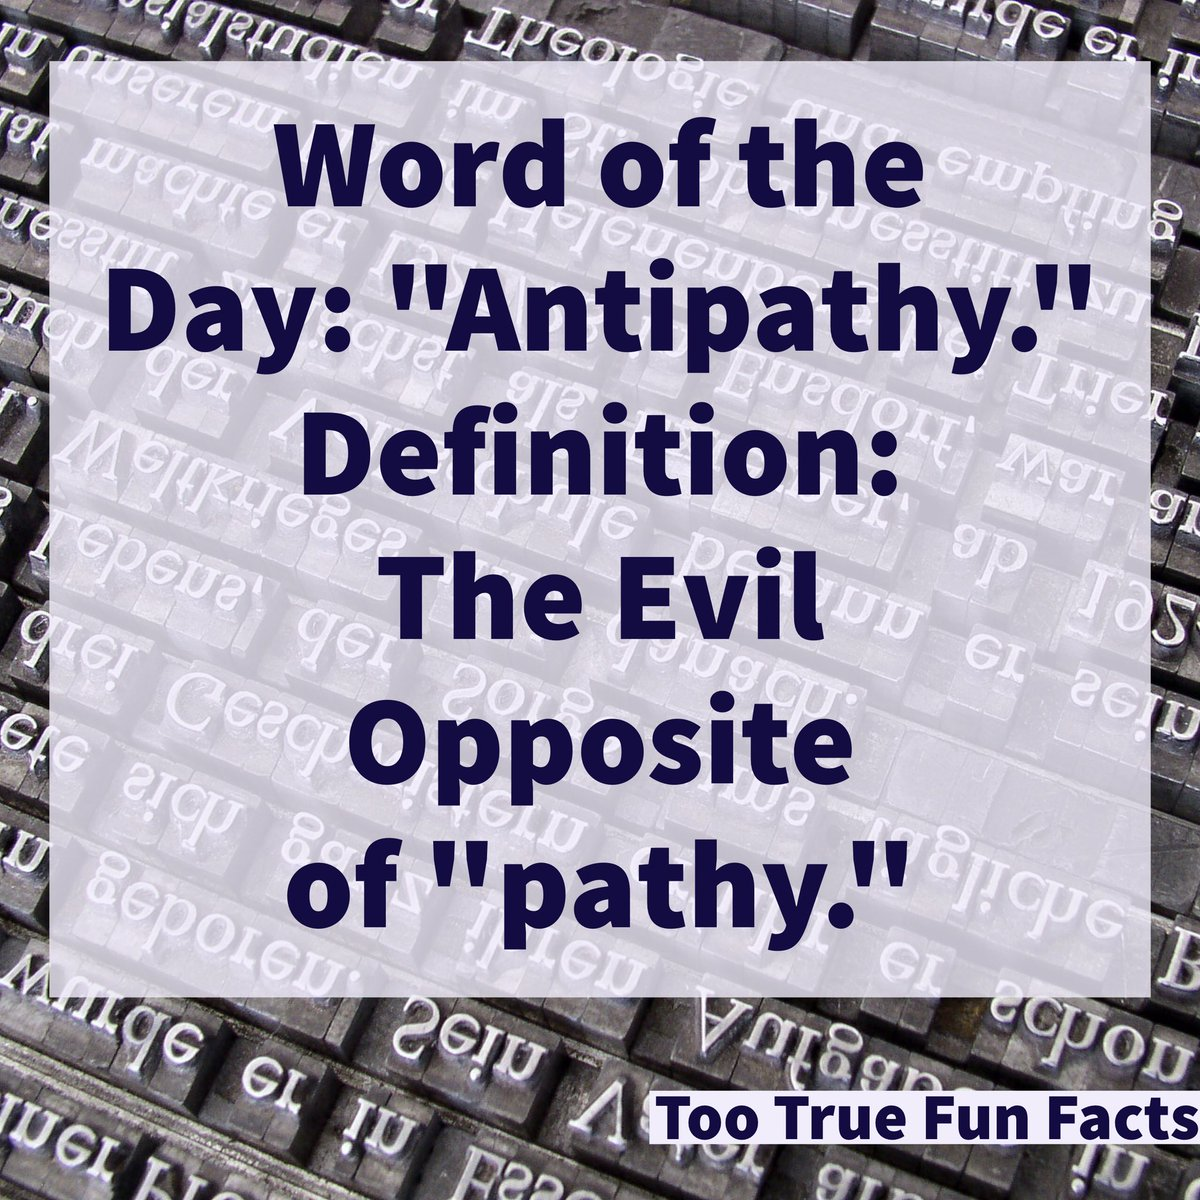 Too True Fun Facts On Twitter Wordoftheday For April 15 Word